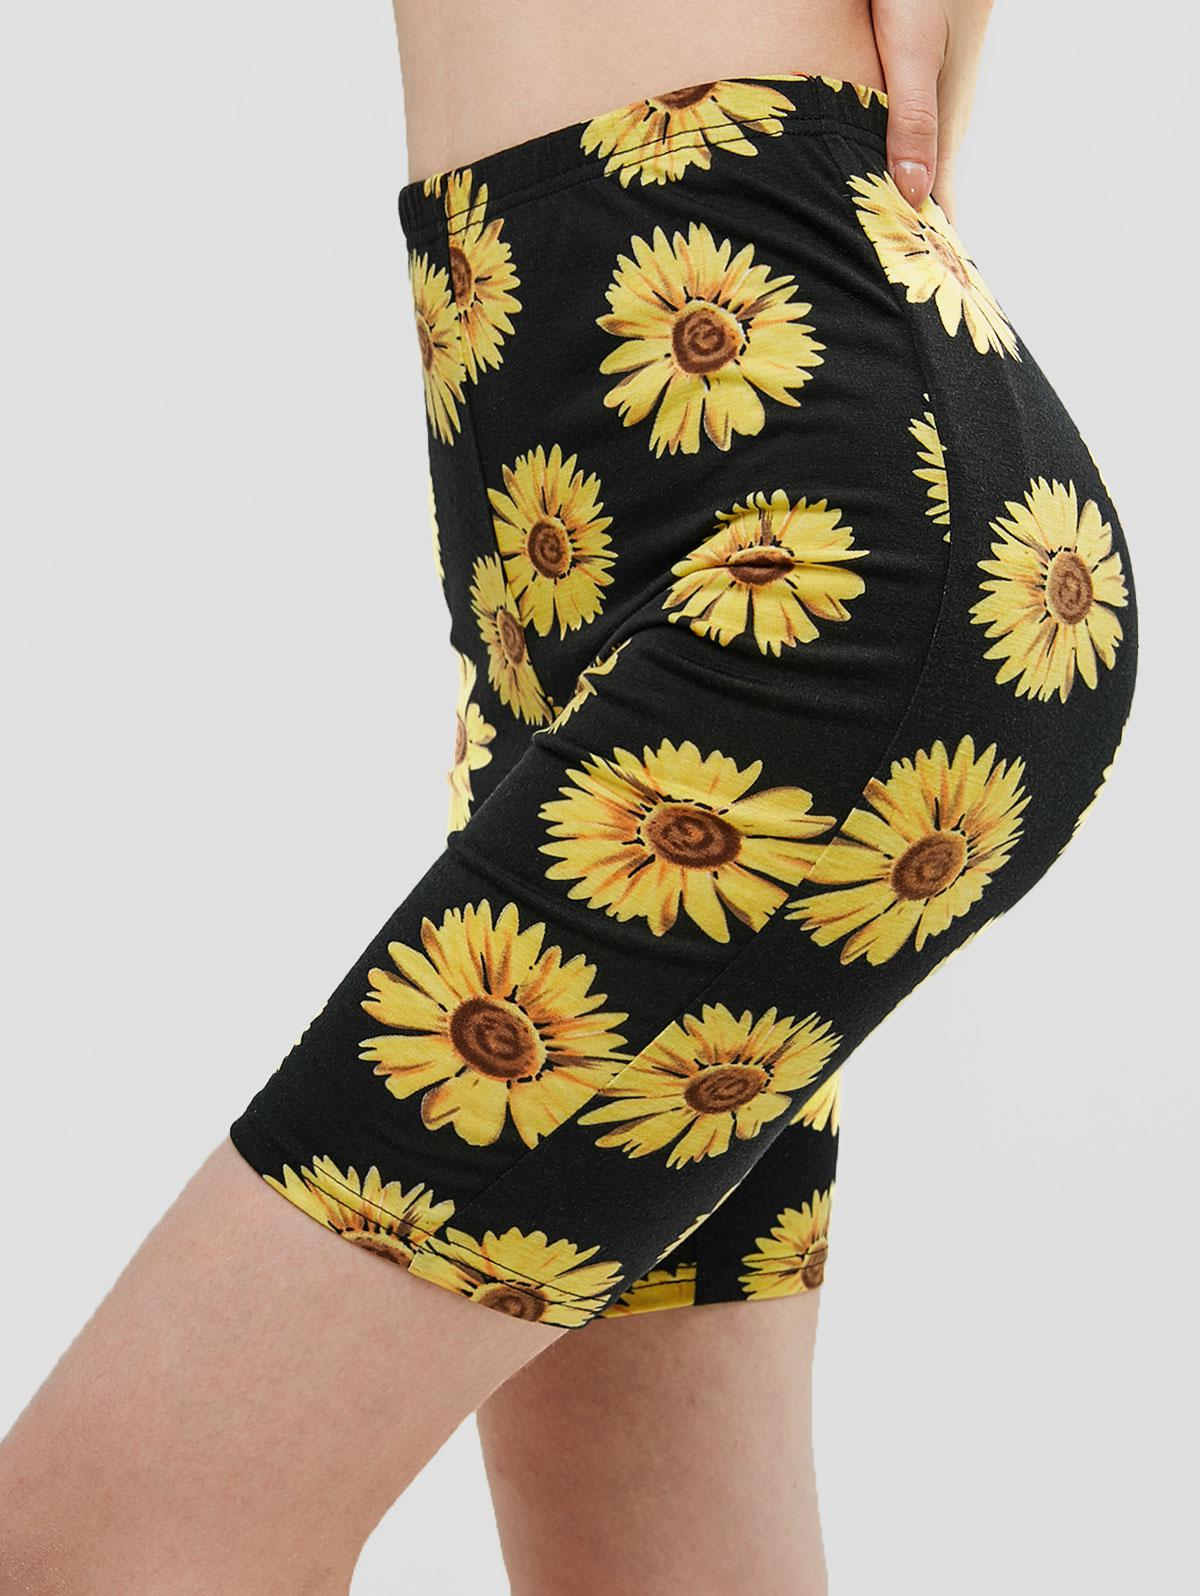 ZAFUL High Waisted Sunflower Biker Shorts, Black